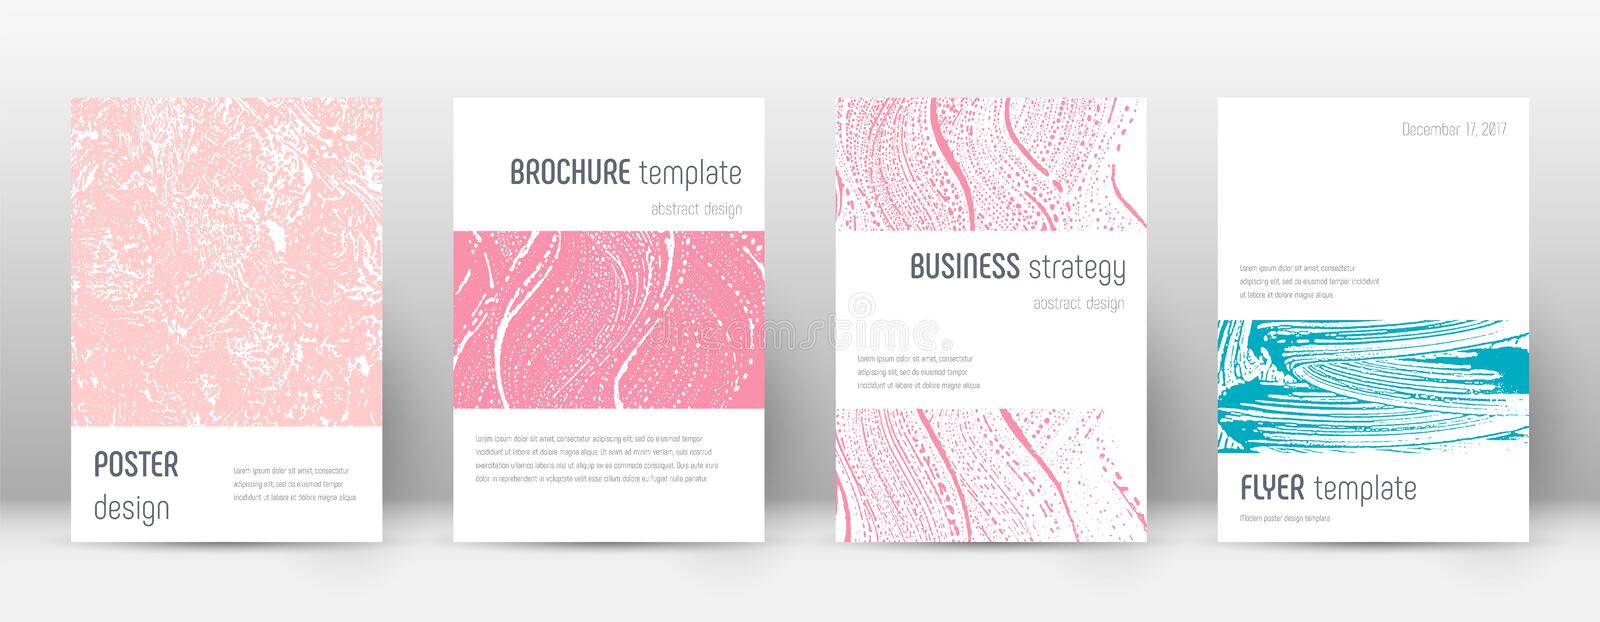 Cover page design template. Minimalistic brochure. Layout. Classic trendy abstract cover page. Pink and blue grunge texture background. Remarkable poster royalty free illustration